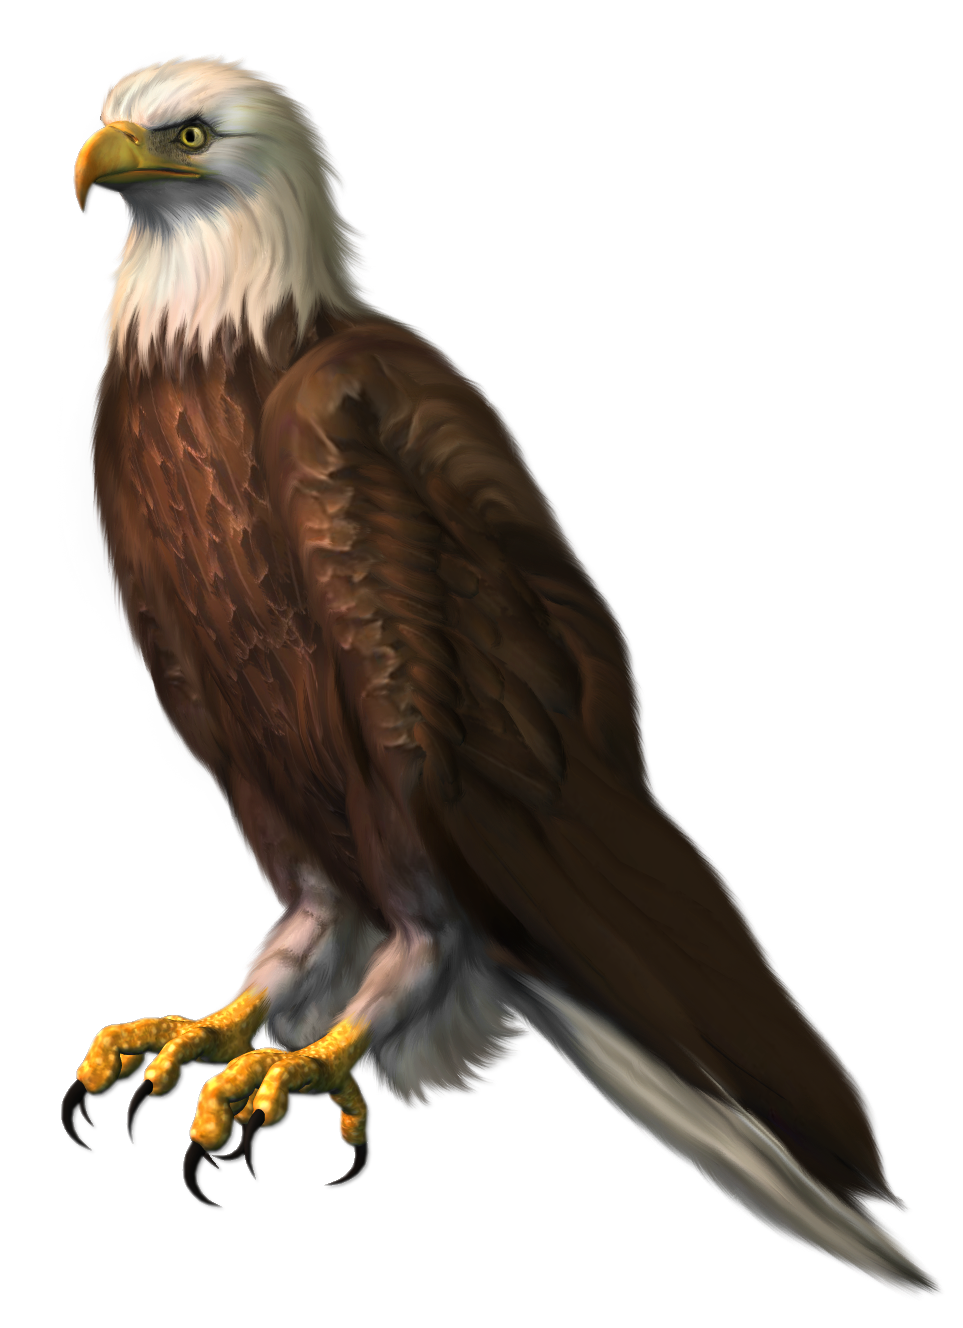 Eagle transparent png picture. Clipart birds red kite